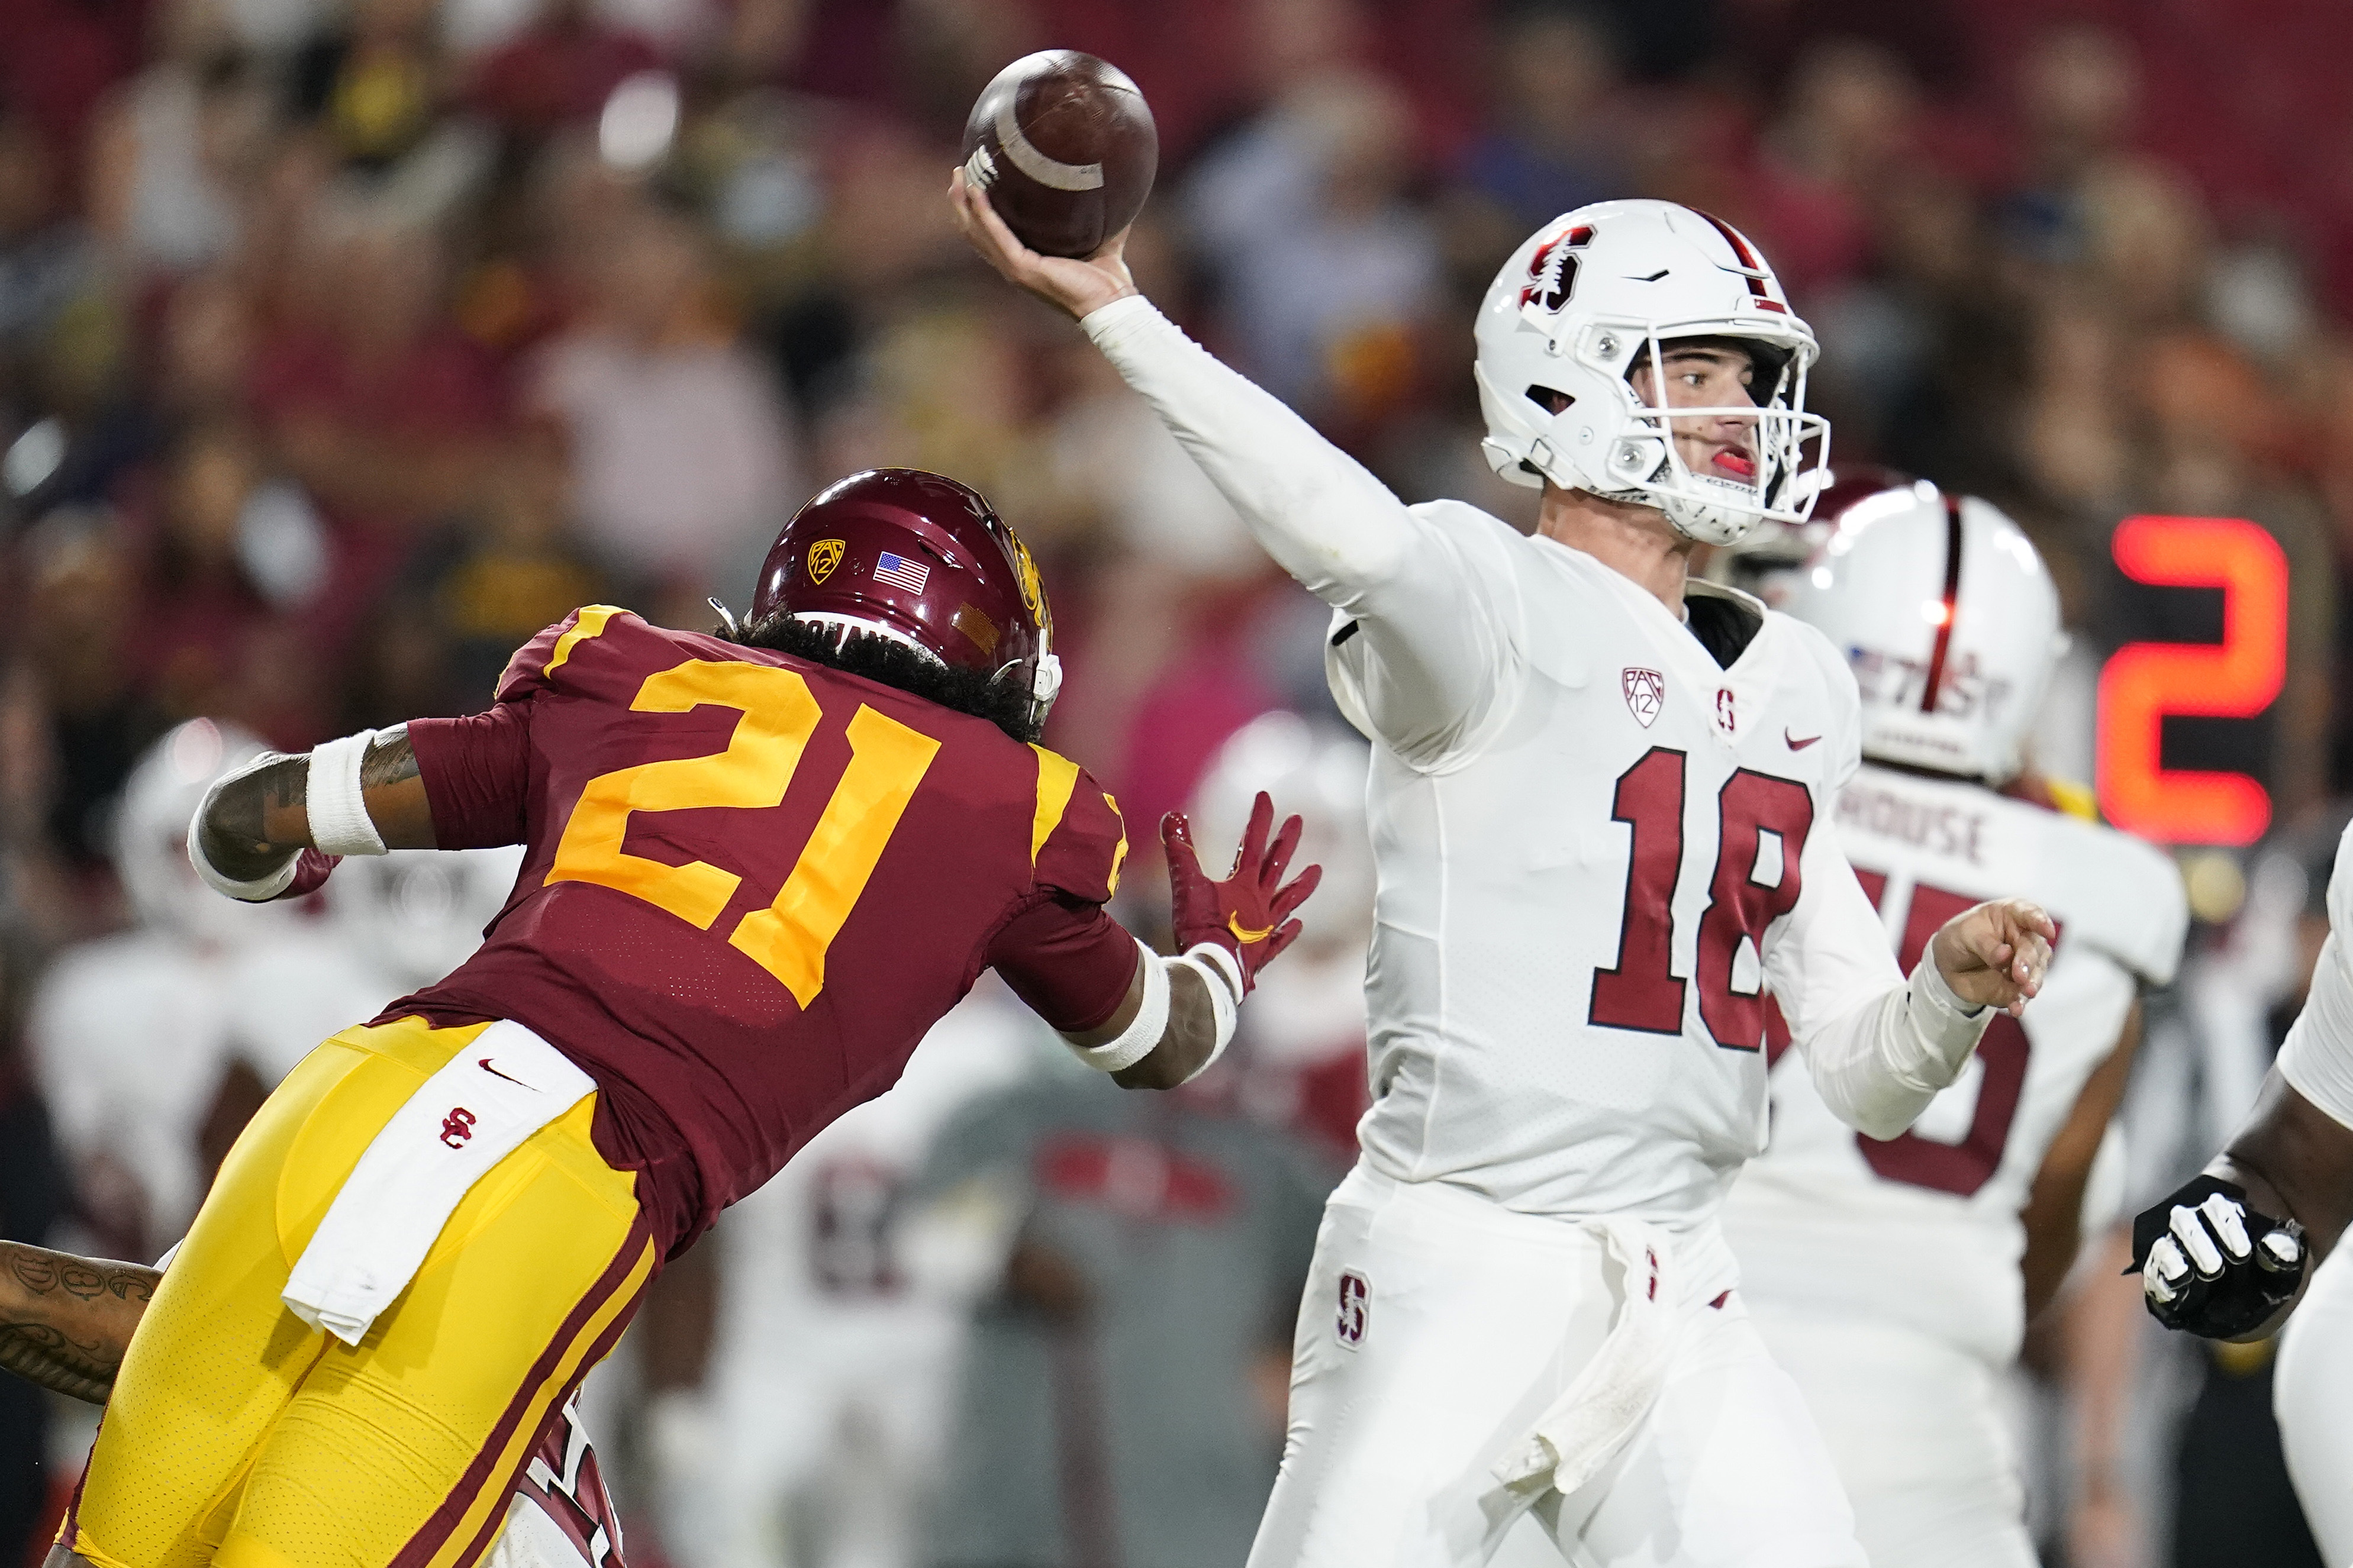 Stanford quarterback Tanner McKee throws past USC safety Isaiah Pola-Mao during game Saturday, Sept. 11, 2021, in Los Angeles.